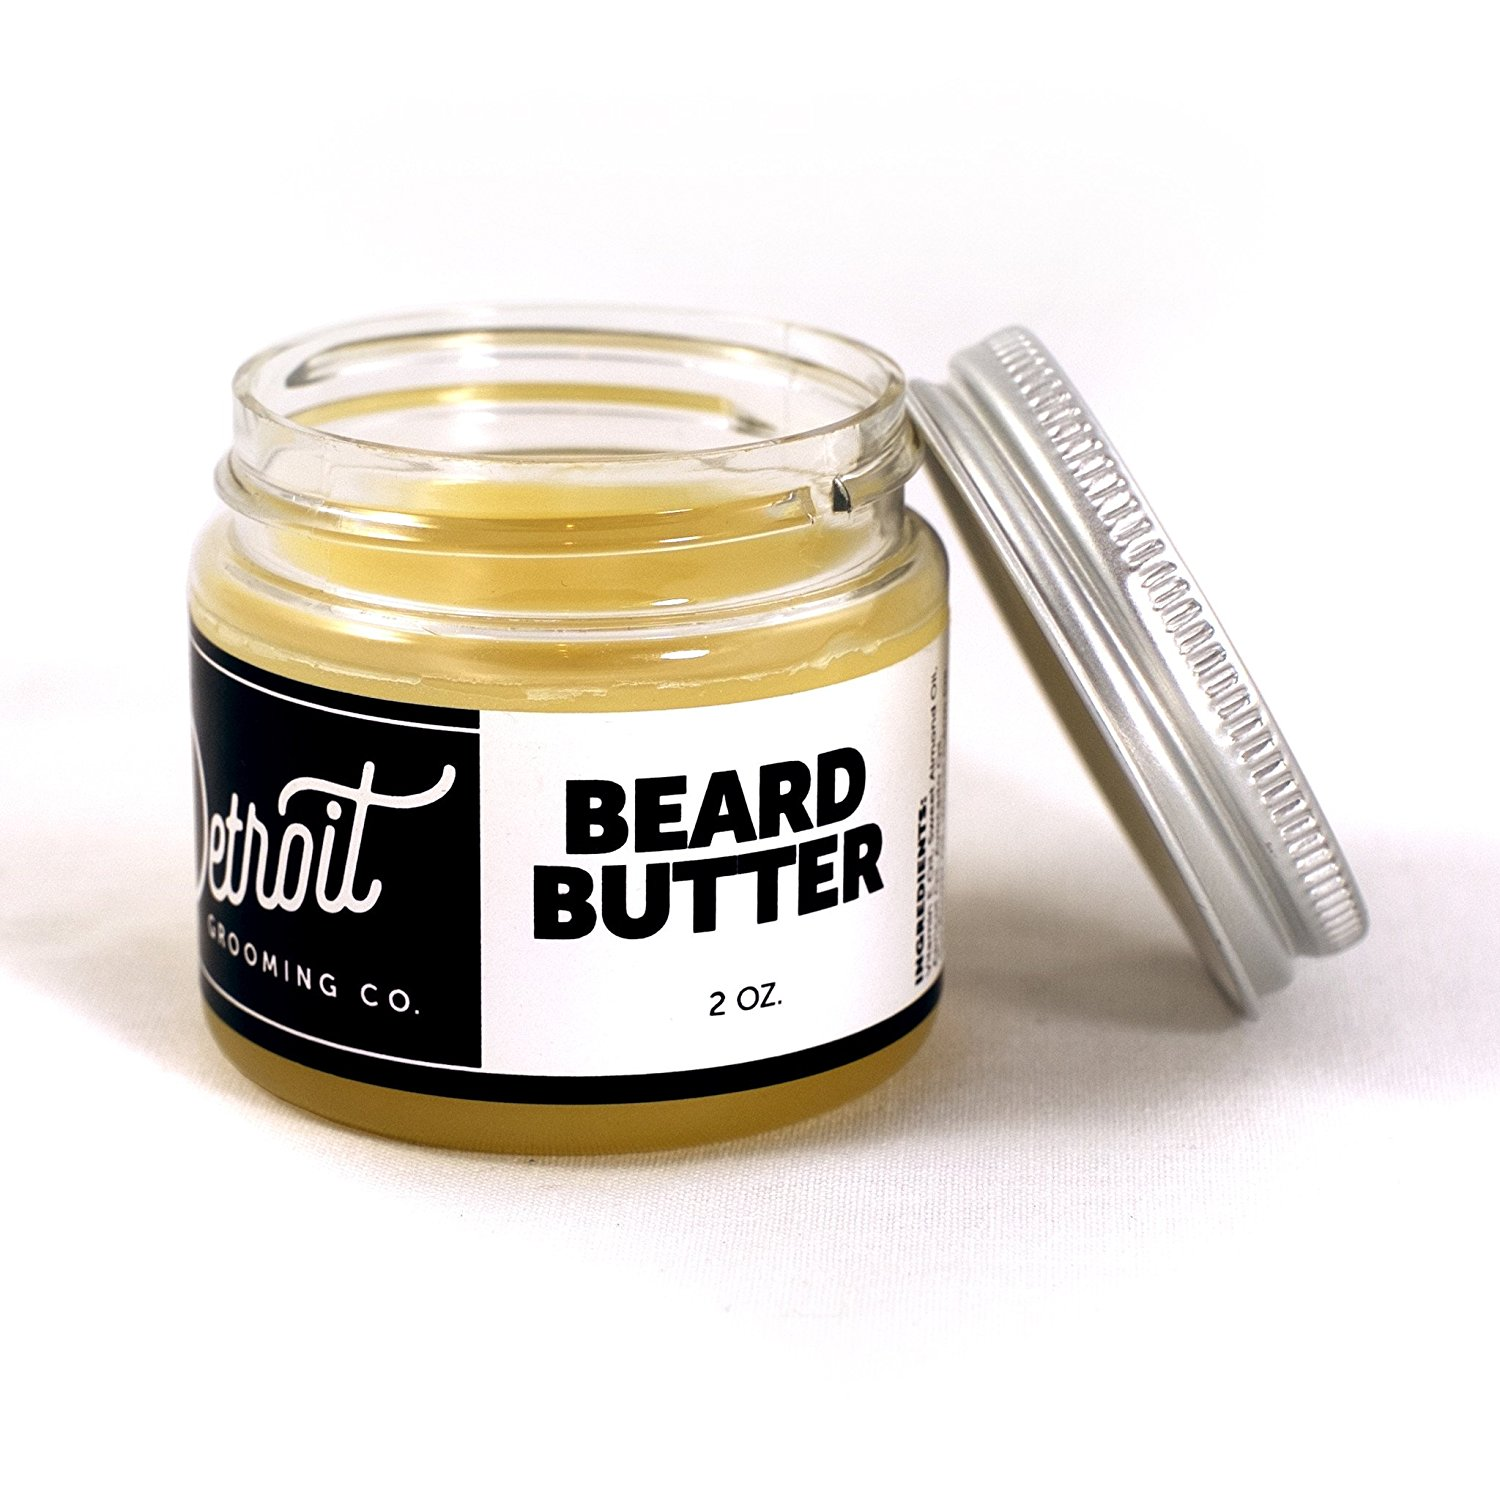 Detroit Beard Butter